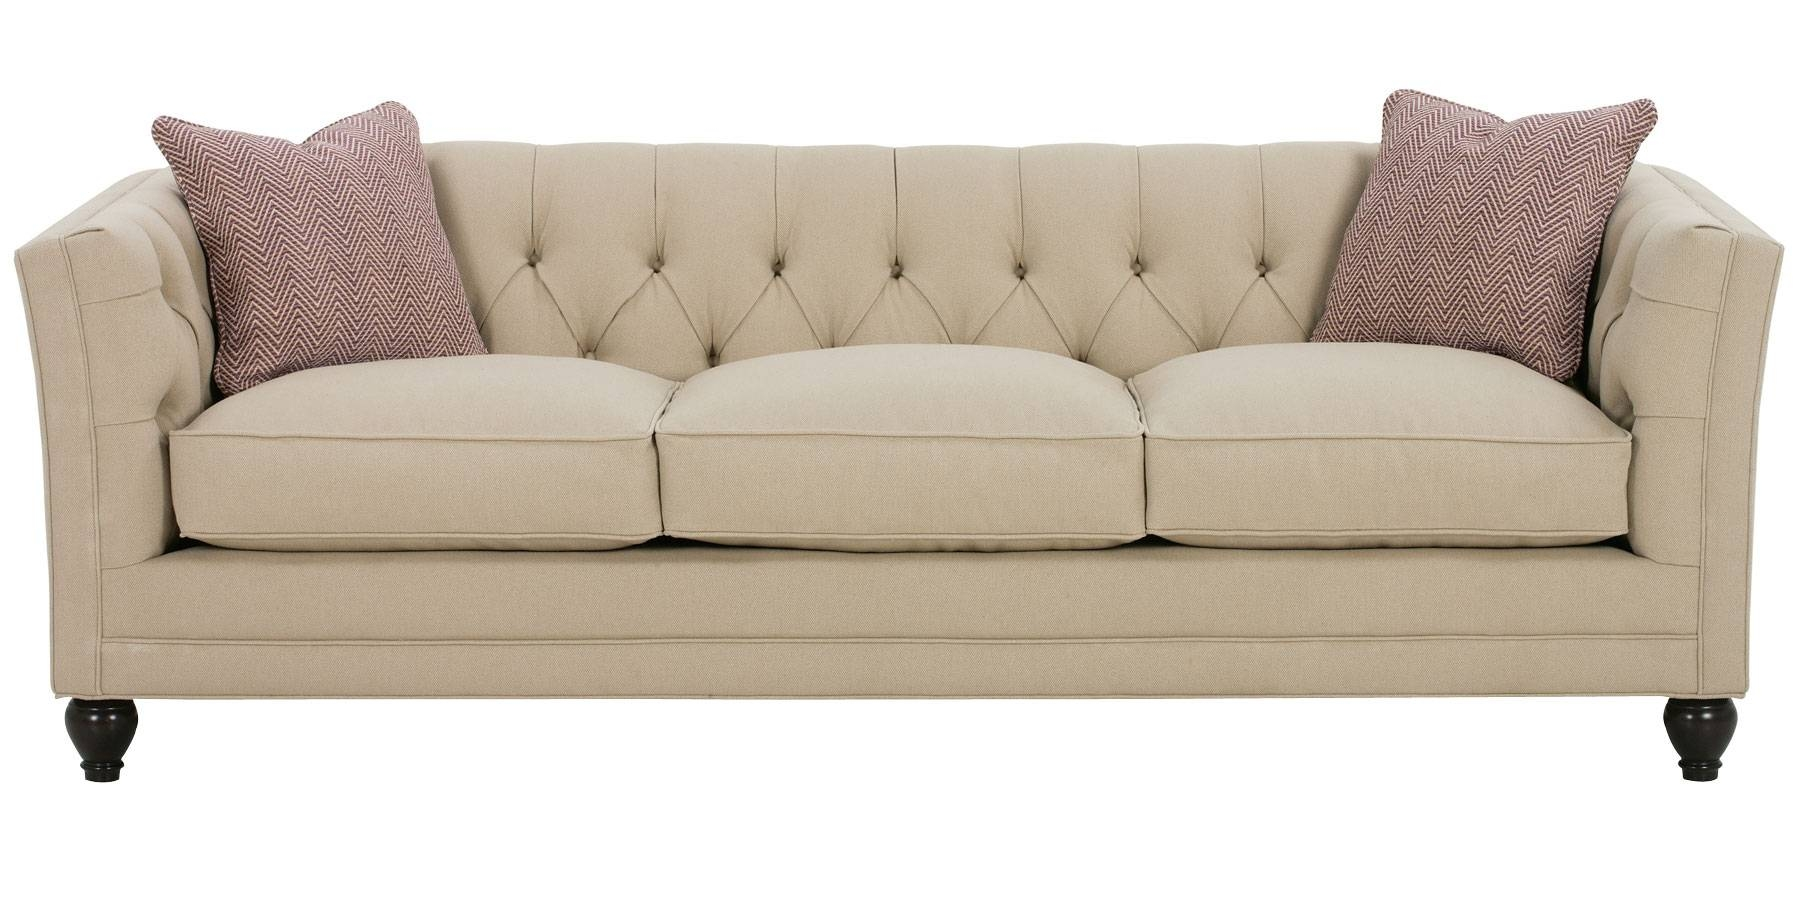 Fabric Upholstered Sofas And Chairs | Club Furniture within Upholstery Fabric Sofas (Image 7 of 30)